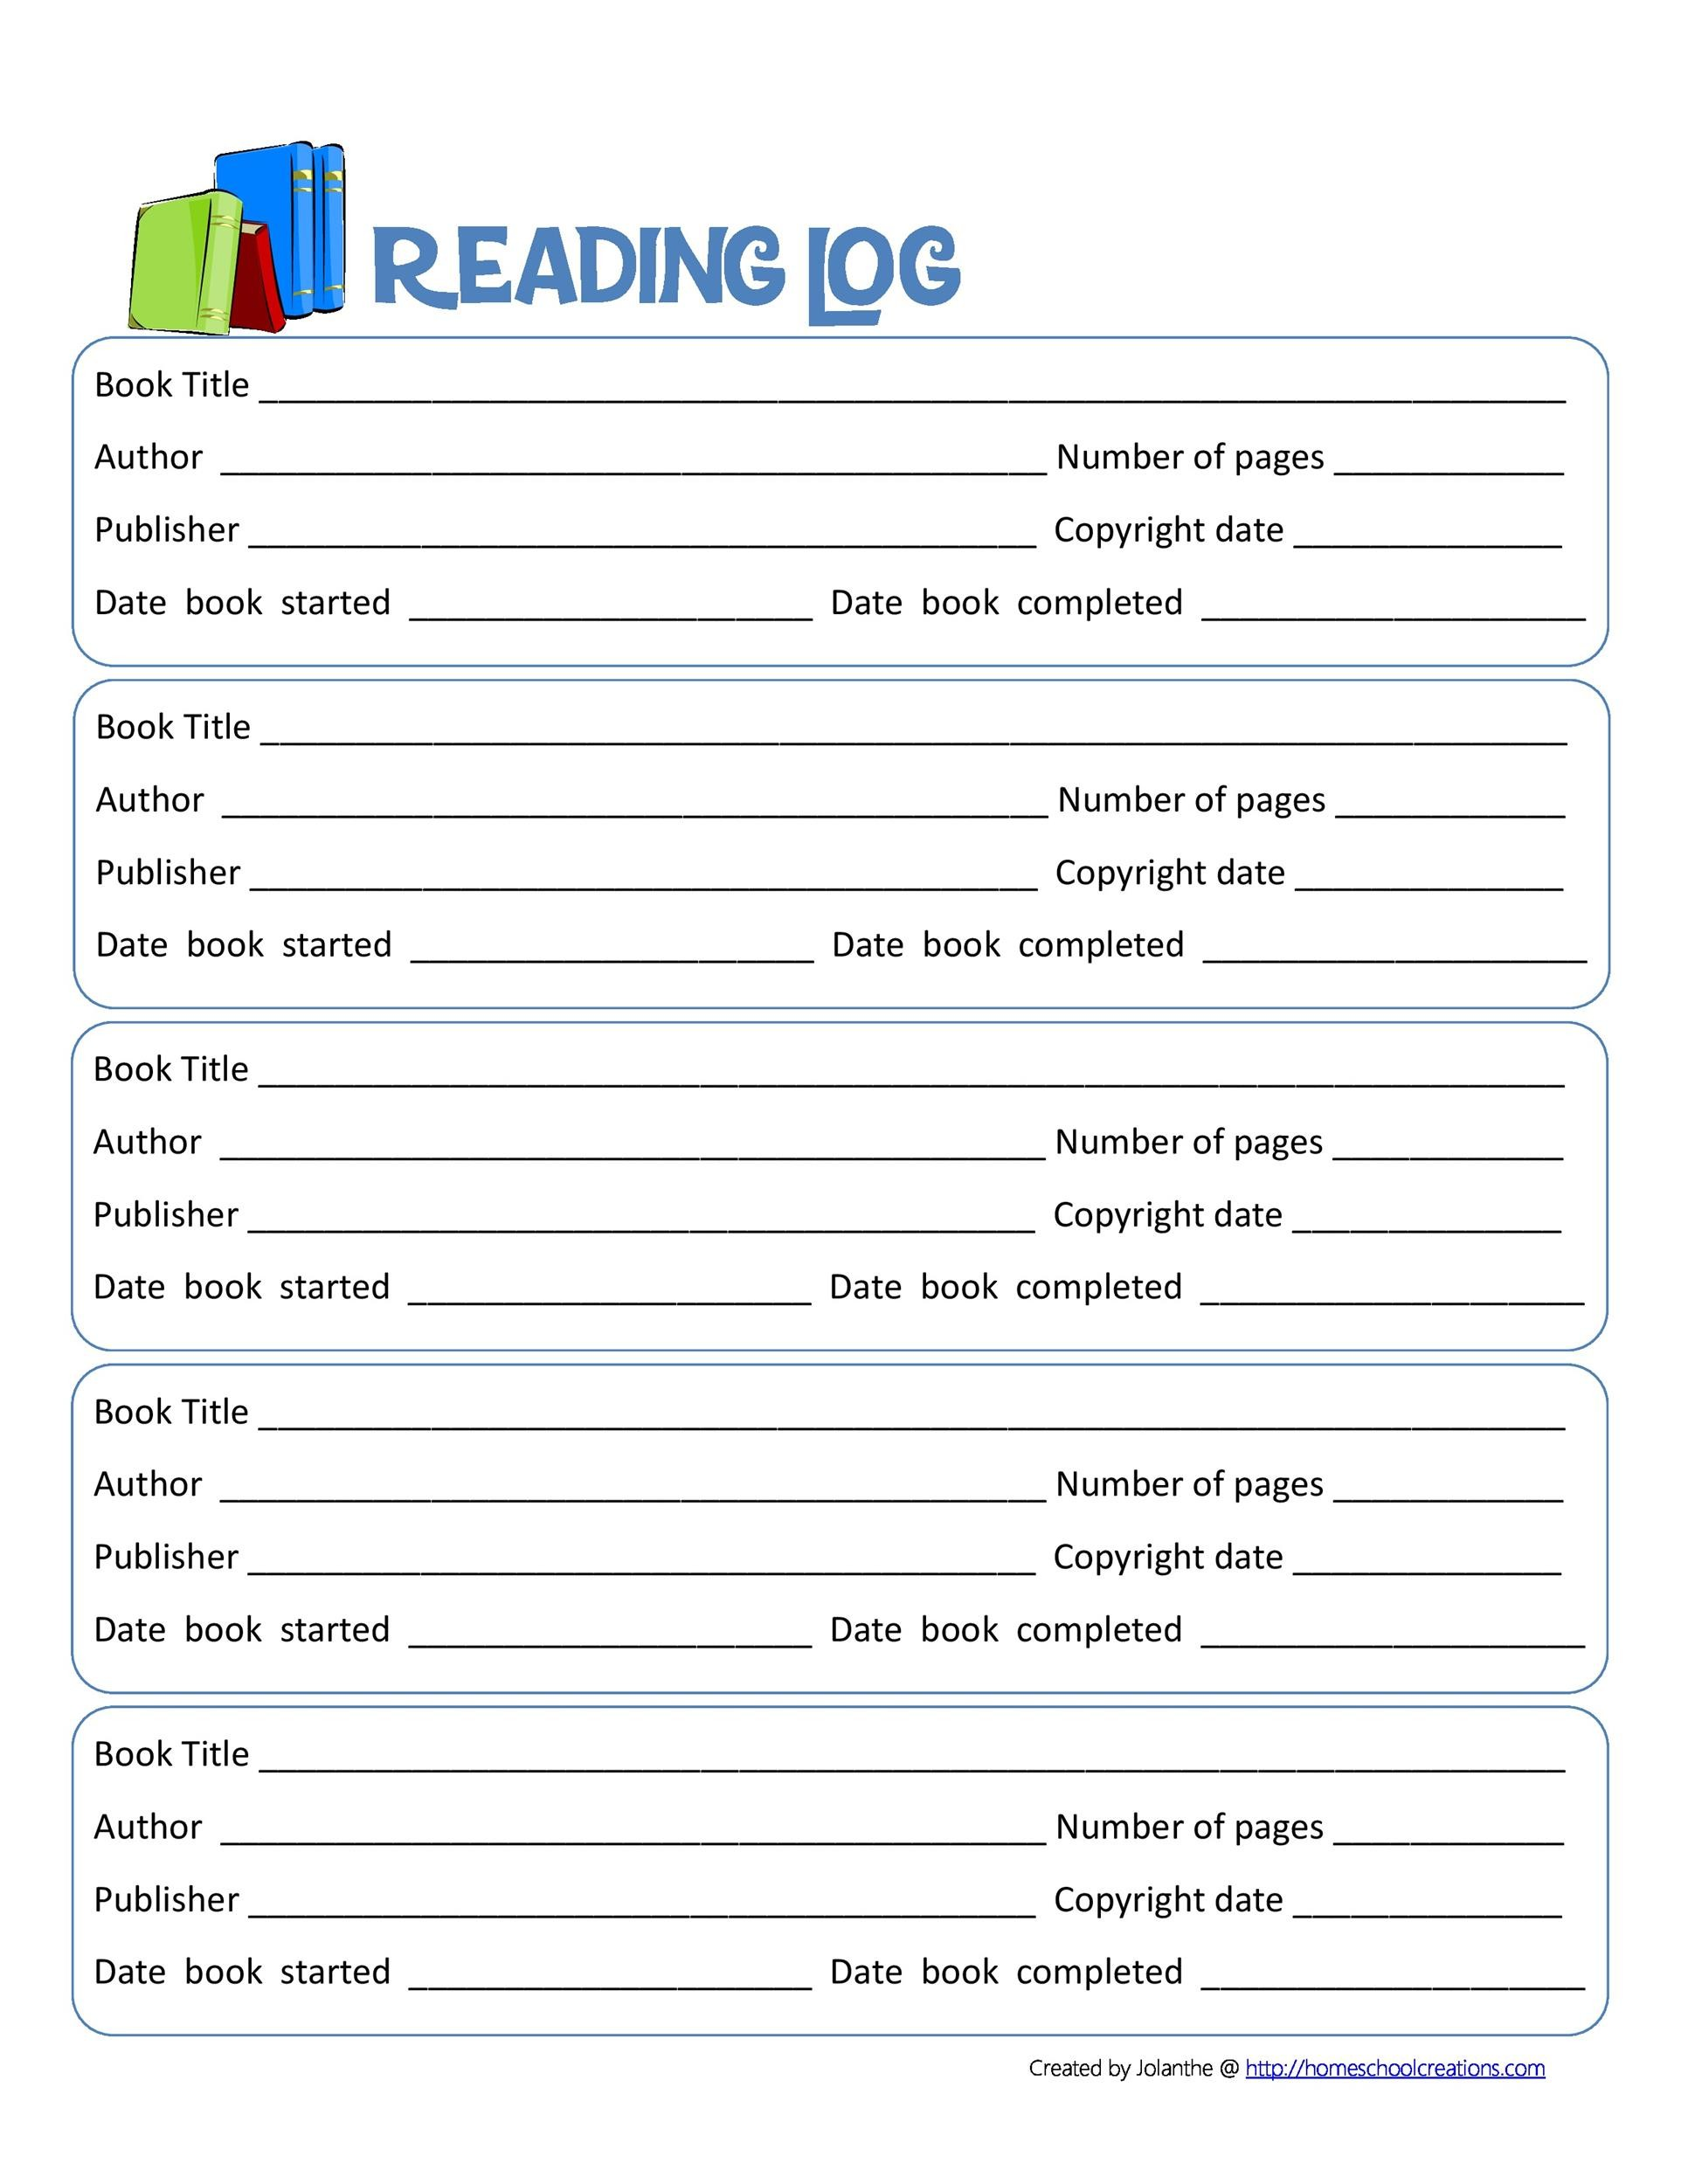 photo regarding Book Log Printable named 47 Printable Studying Log Templates for Little ones, Center College